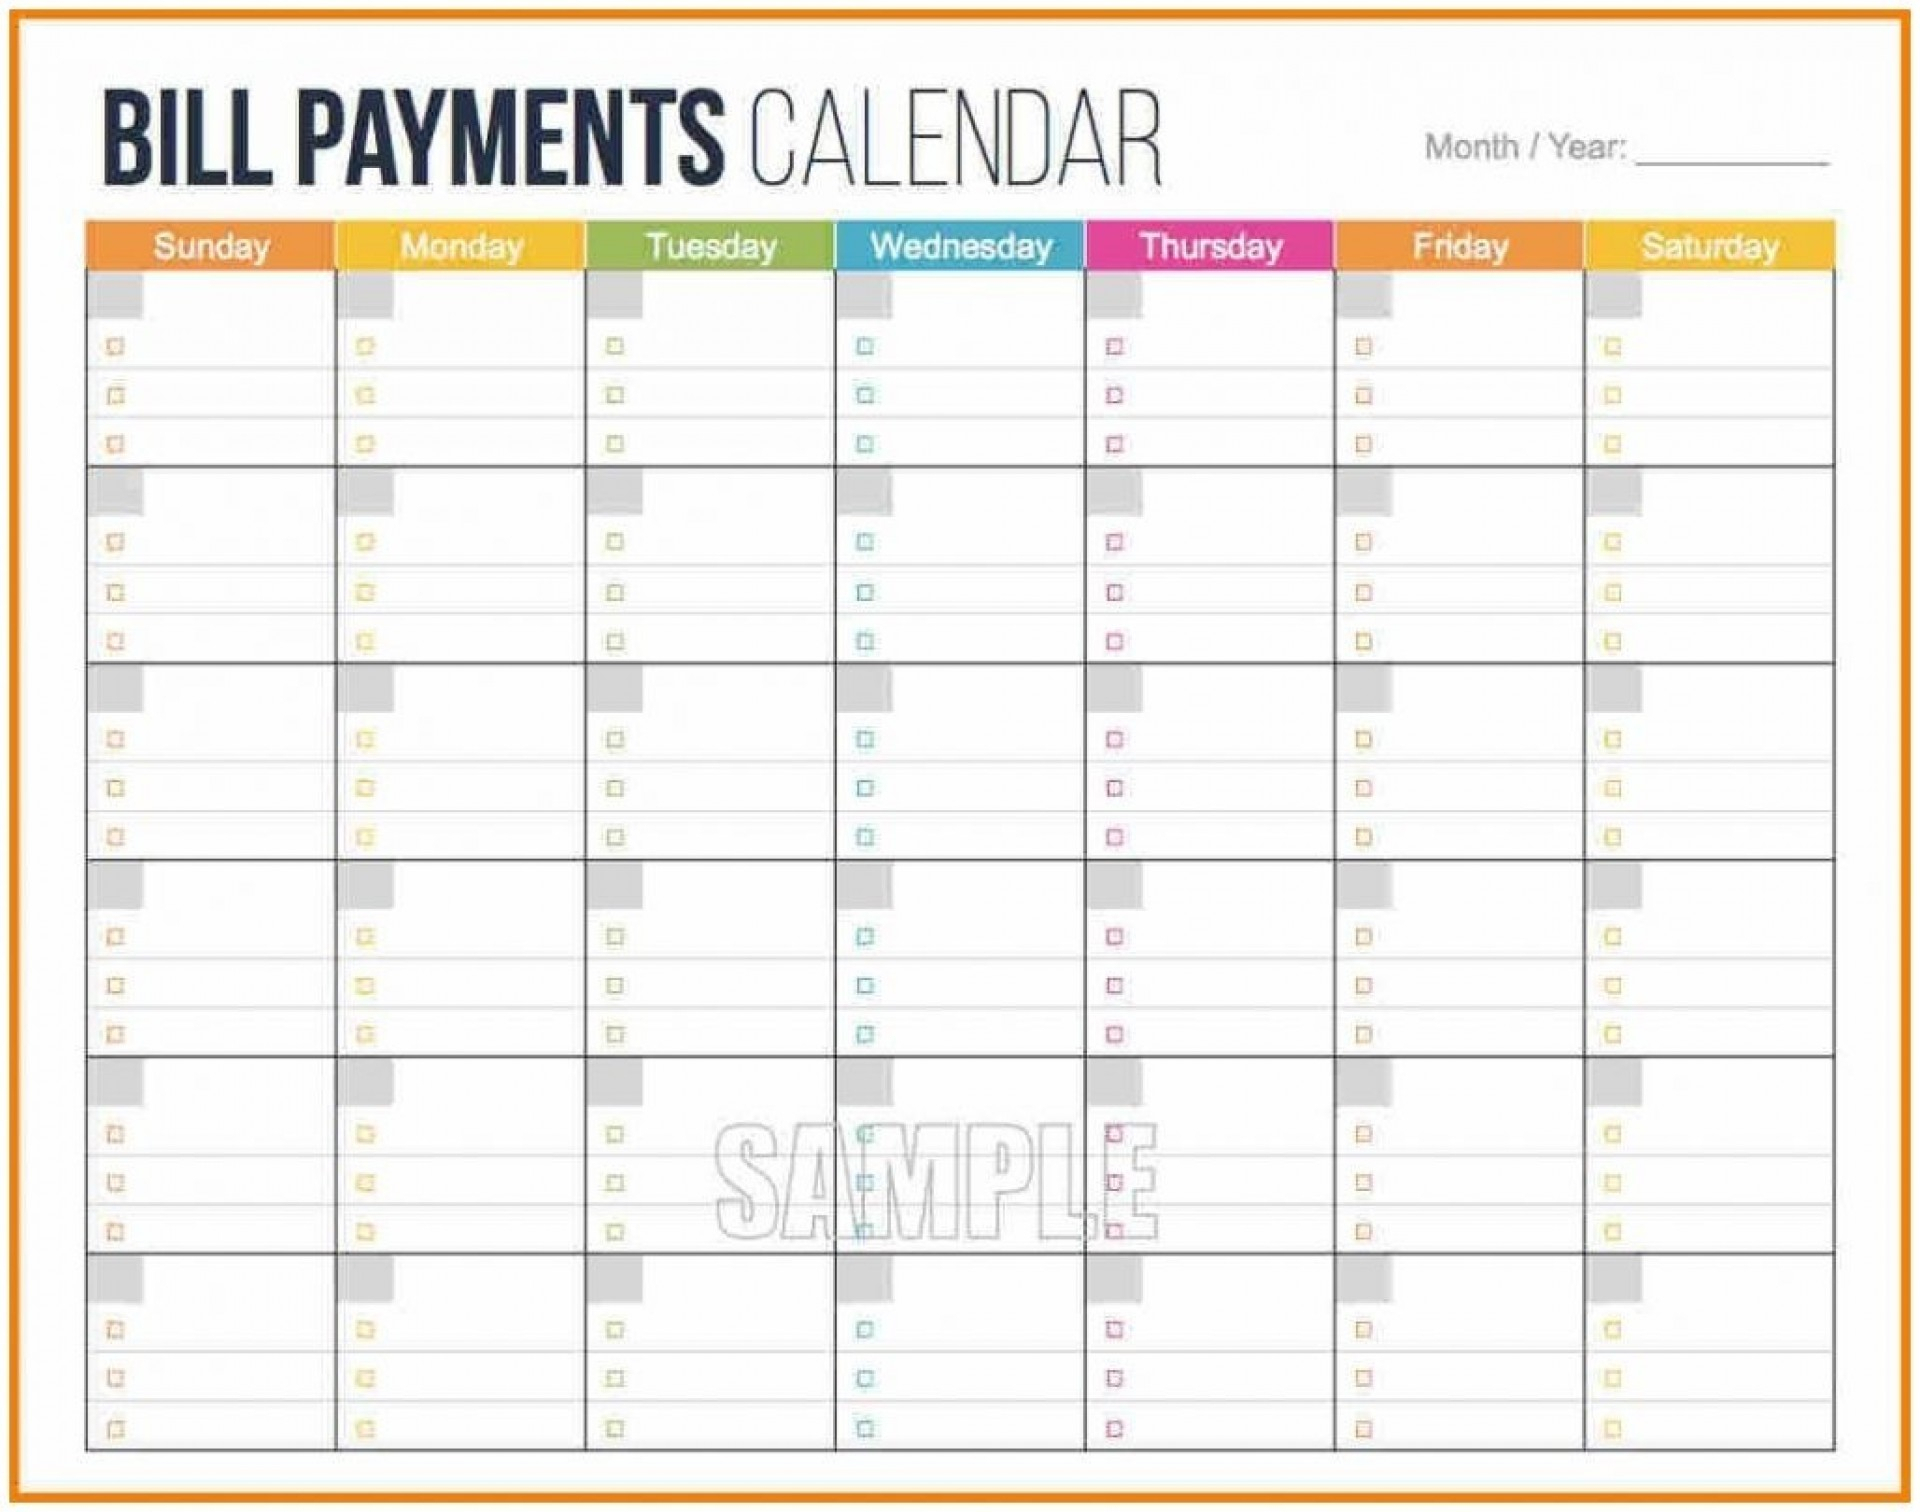 003 Bill Pay Calendar Template Ideas Paying Free Printable